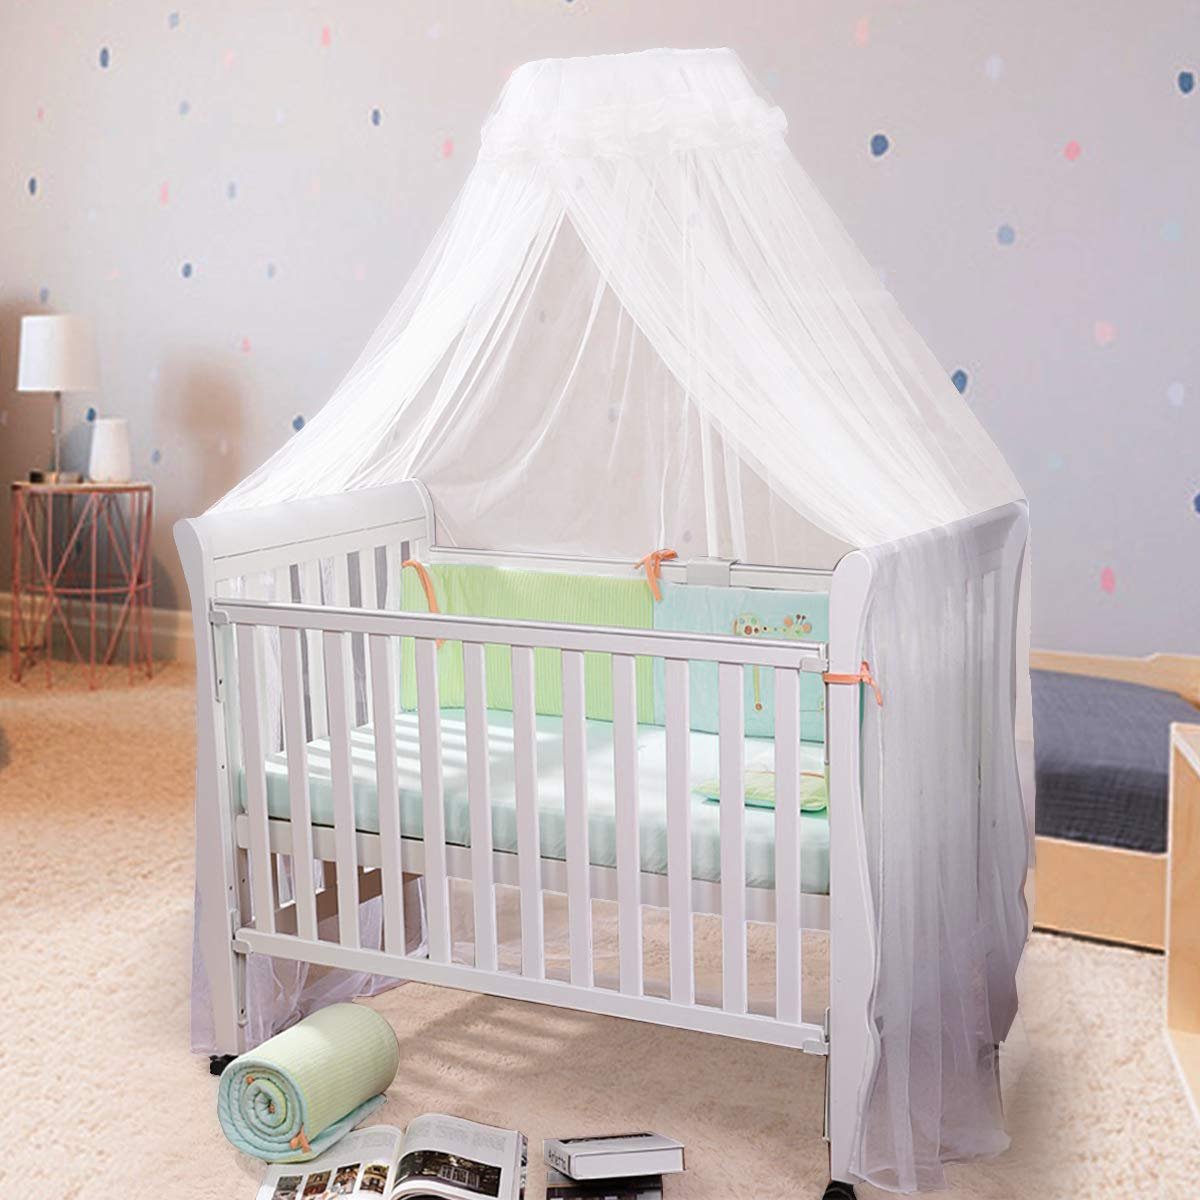 Fdit Universal Dome Baby Infant Mosquito Net Toddler Bed Crib Canopy Netting Bedroom Hanging Bed Net Bedding Yellow Edge Yellow Edge